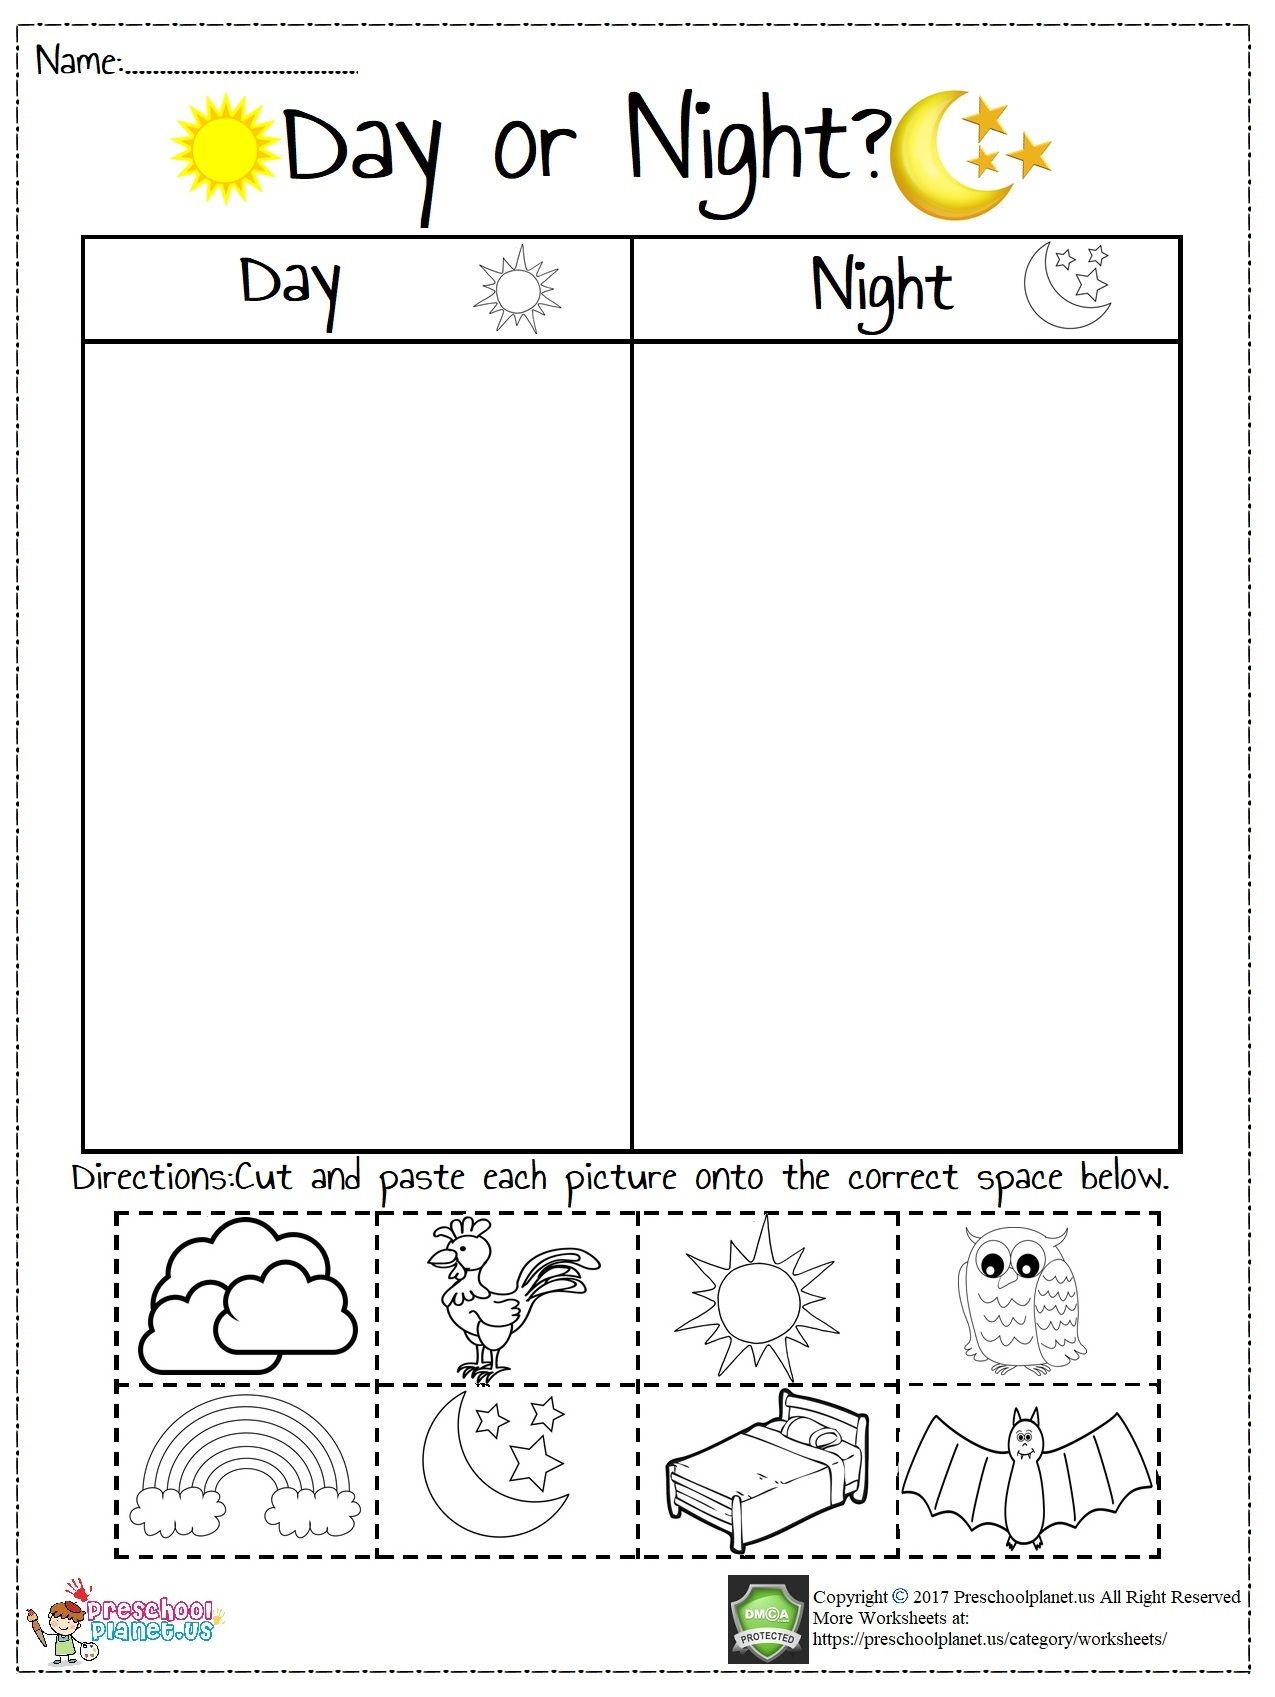 Today We Prepared A Worksheet About Day And Night There